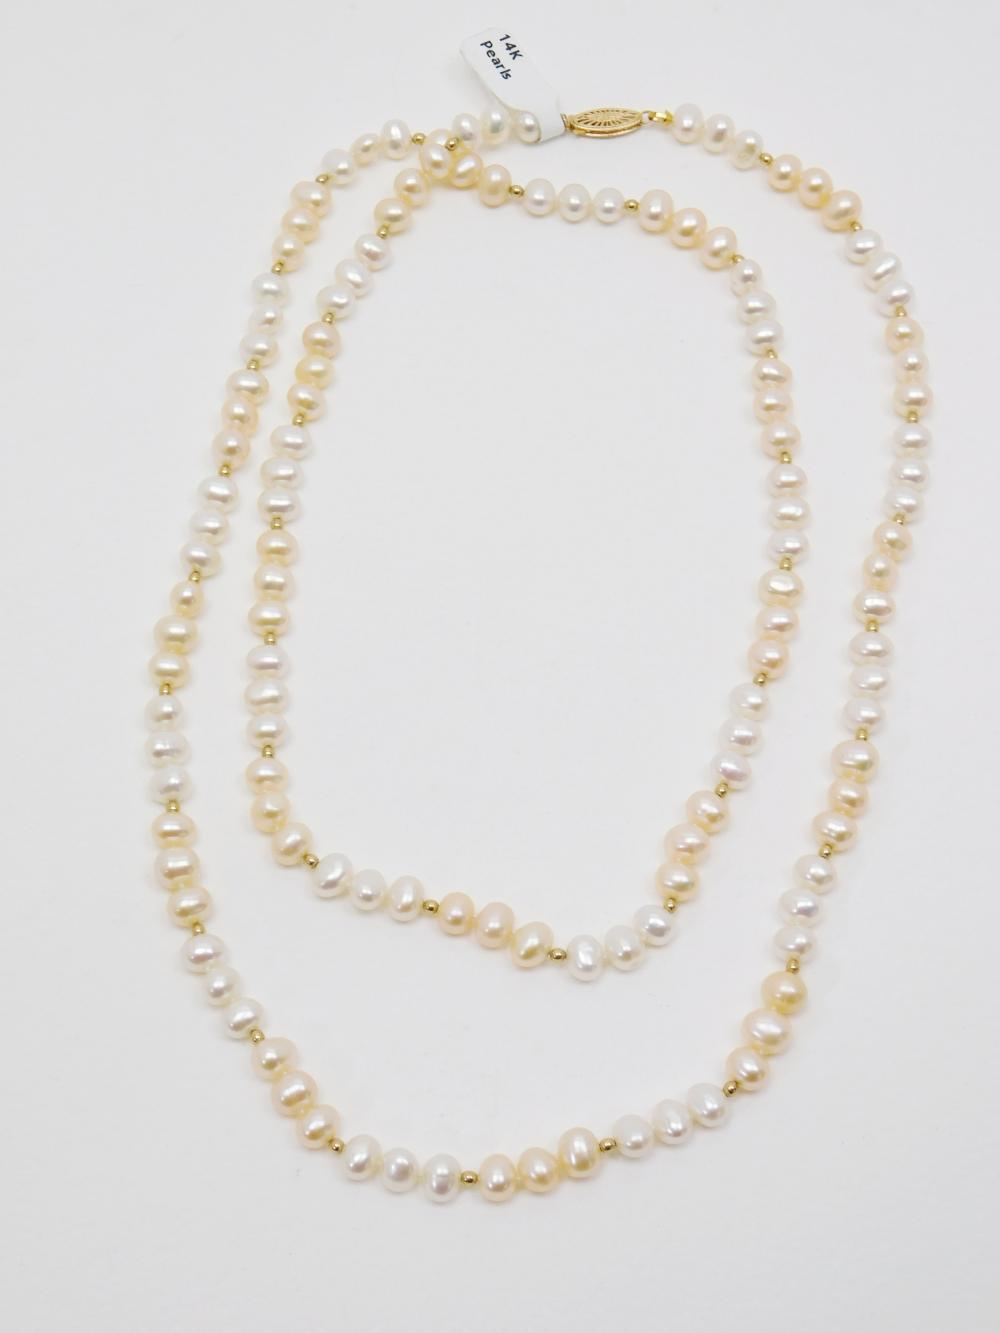 """14K Gold Clasp & Bead Cultured Pearl 37"""" Body Necklace 46G"""